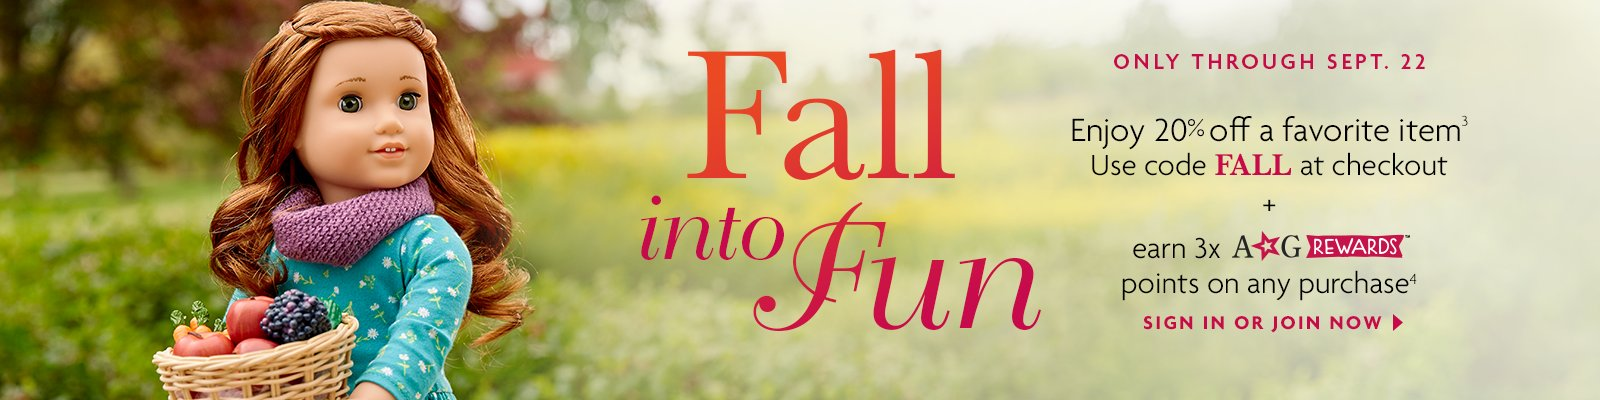 Fall into fun. Only through Sept 22. Enjoy 20% off a favorite item and earn 3x AG Rewards points. Use code FALL at checkout.